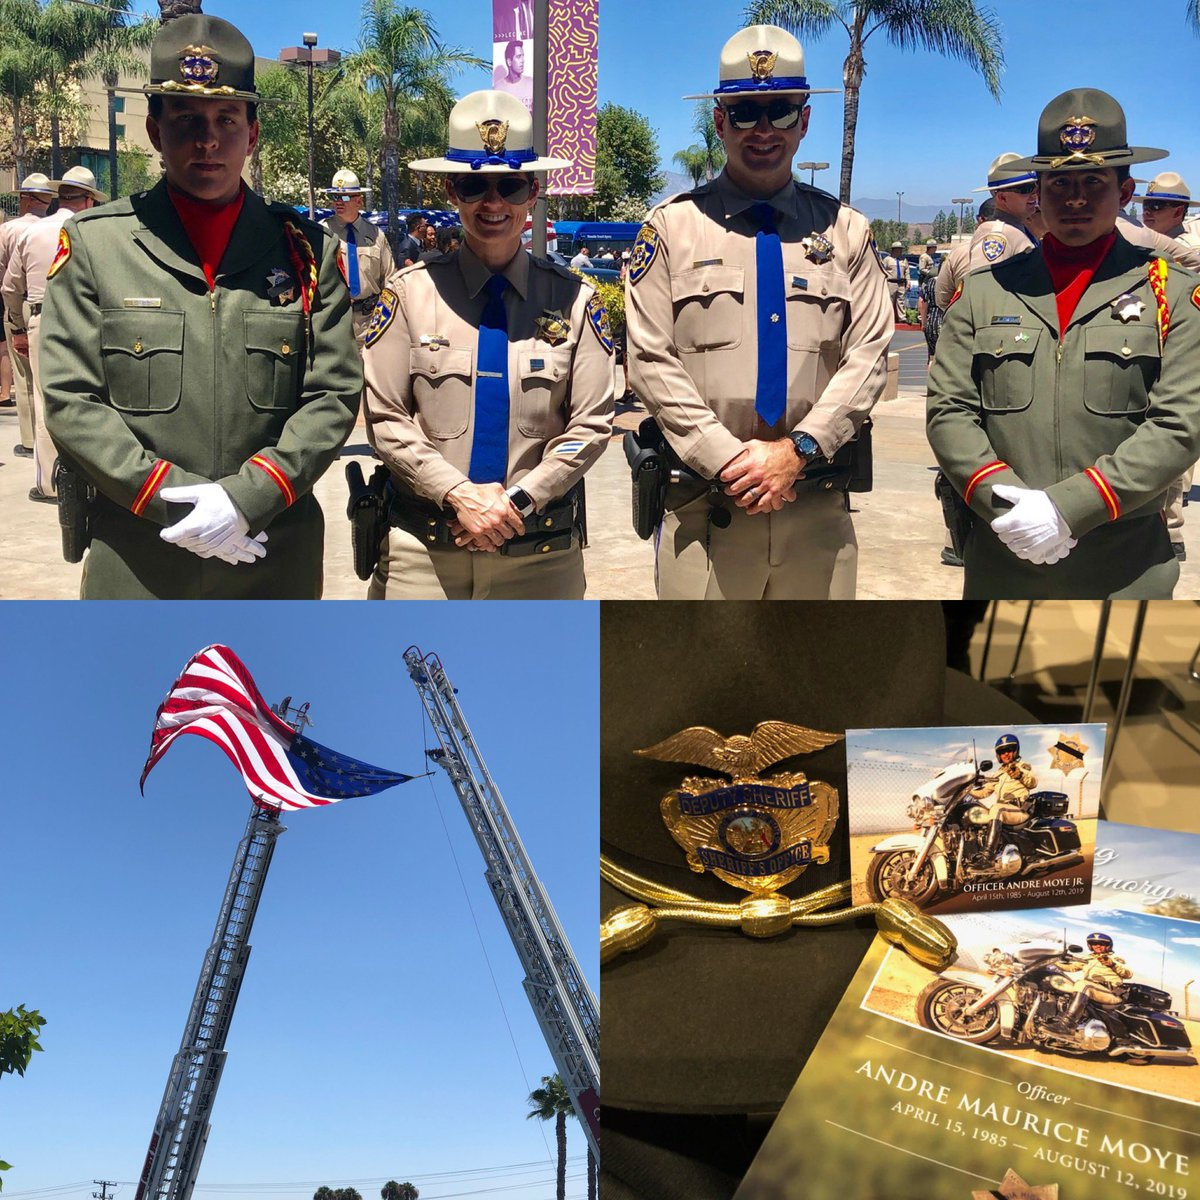 Honoring Officer Andre Moye, Jr. Kern County Sheriff's Office Honor Guard members Deputy Aguilar and Deputy Garcia attended the memorial service for California Highway Patrol Officer Moye held in Riverside. Officer Moye was killed in a shooting at a traffic stop August 12, 2019 https://t.co/ZVEx4qo5Le